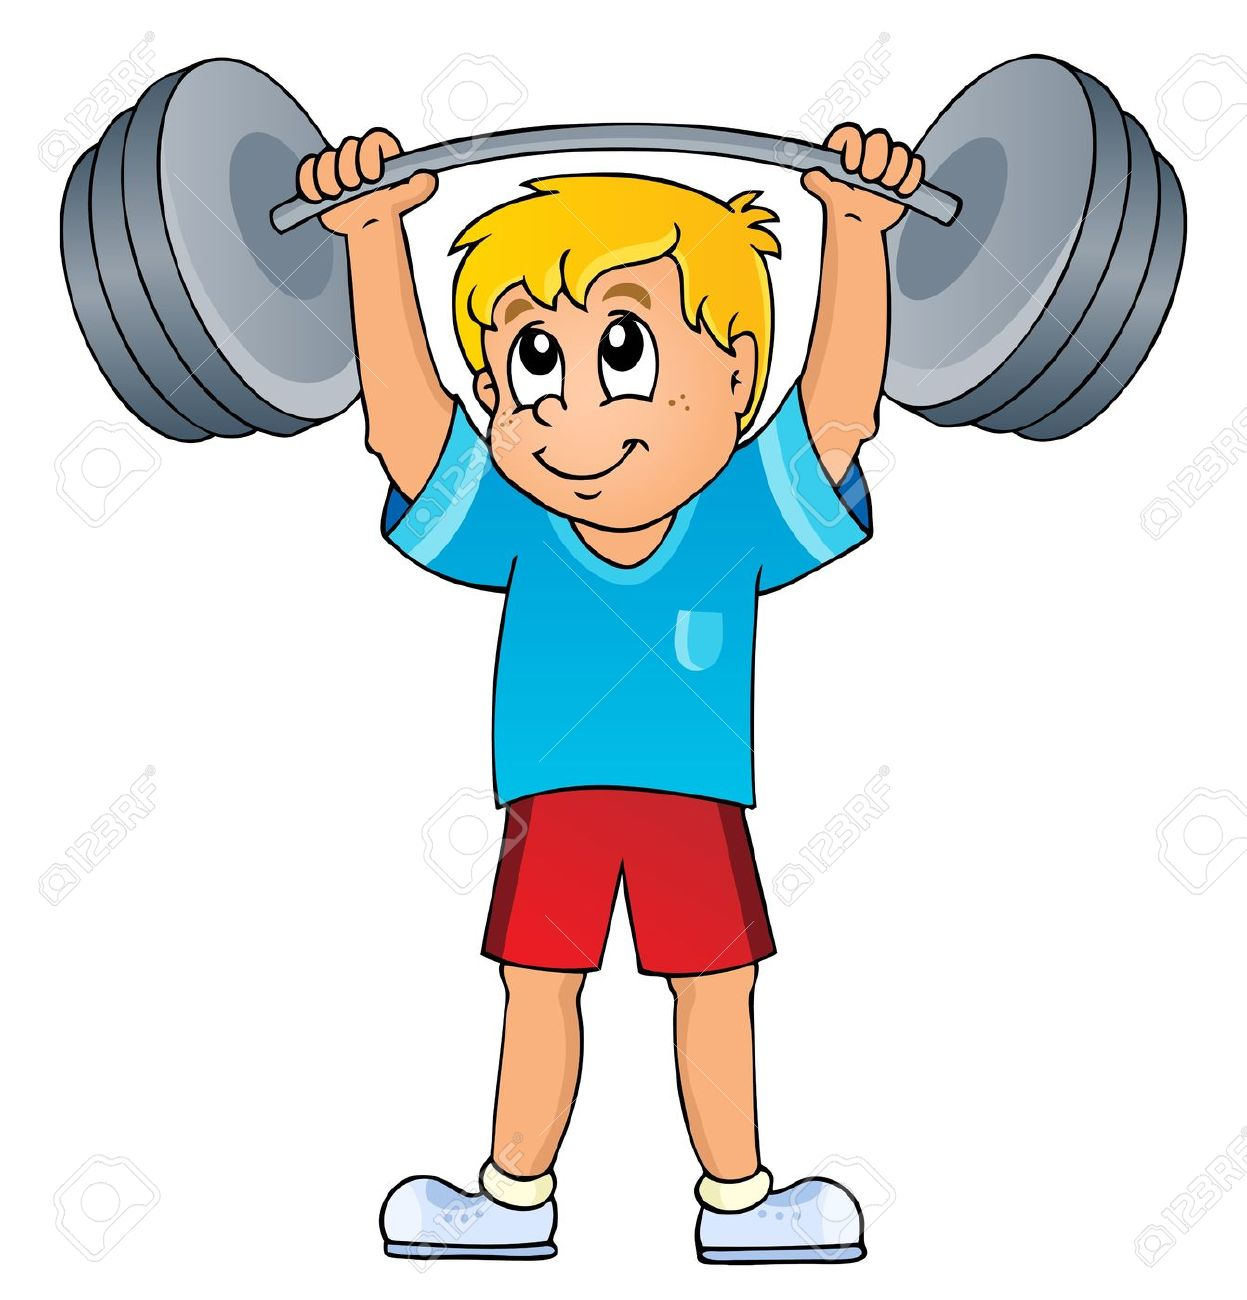 Lifting weights clipart - Clipground